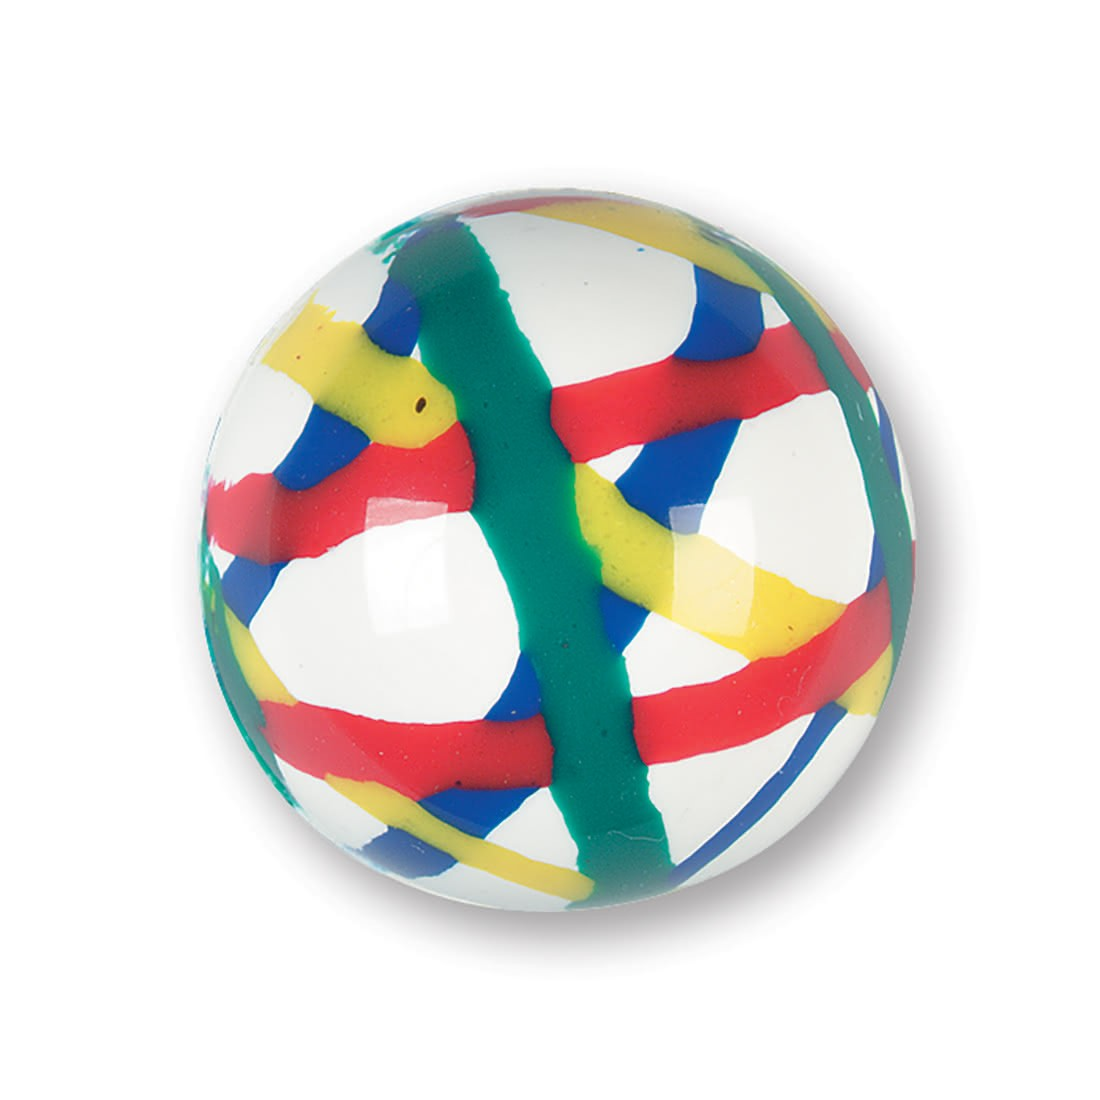 43mm Giant Doodle Bouncing Balls [image]